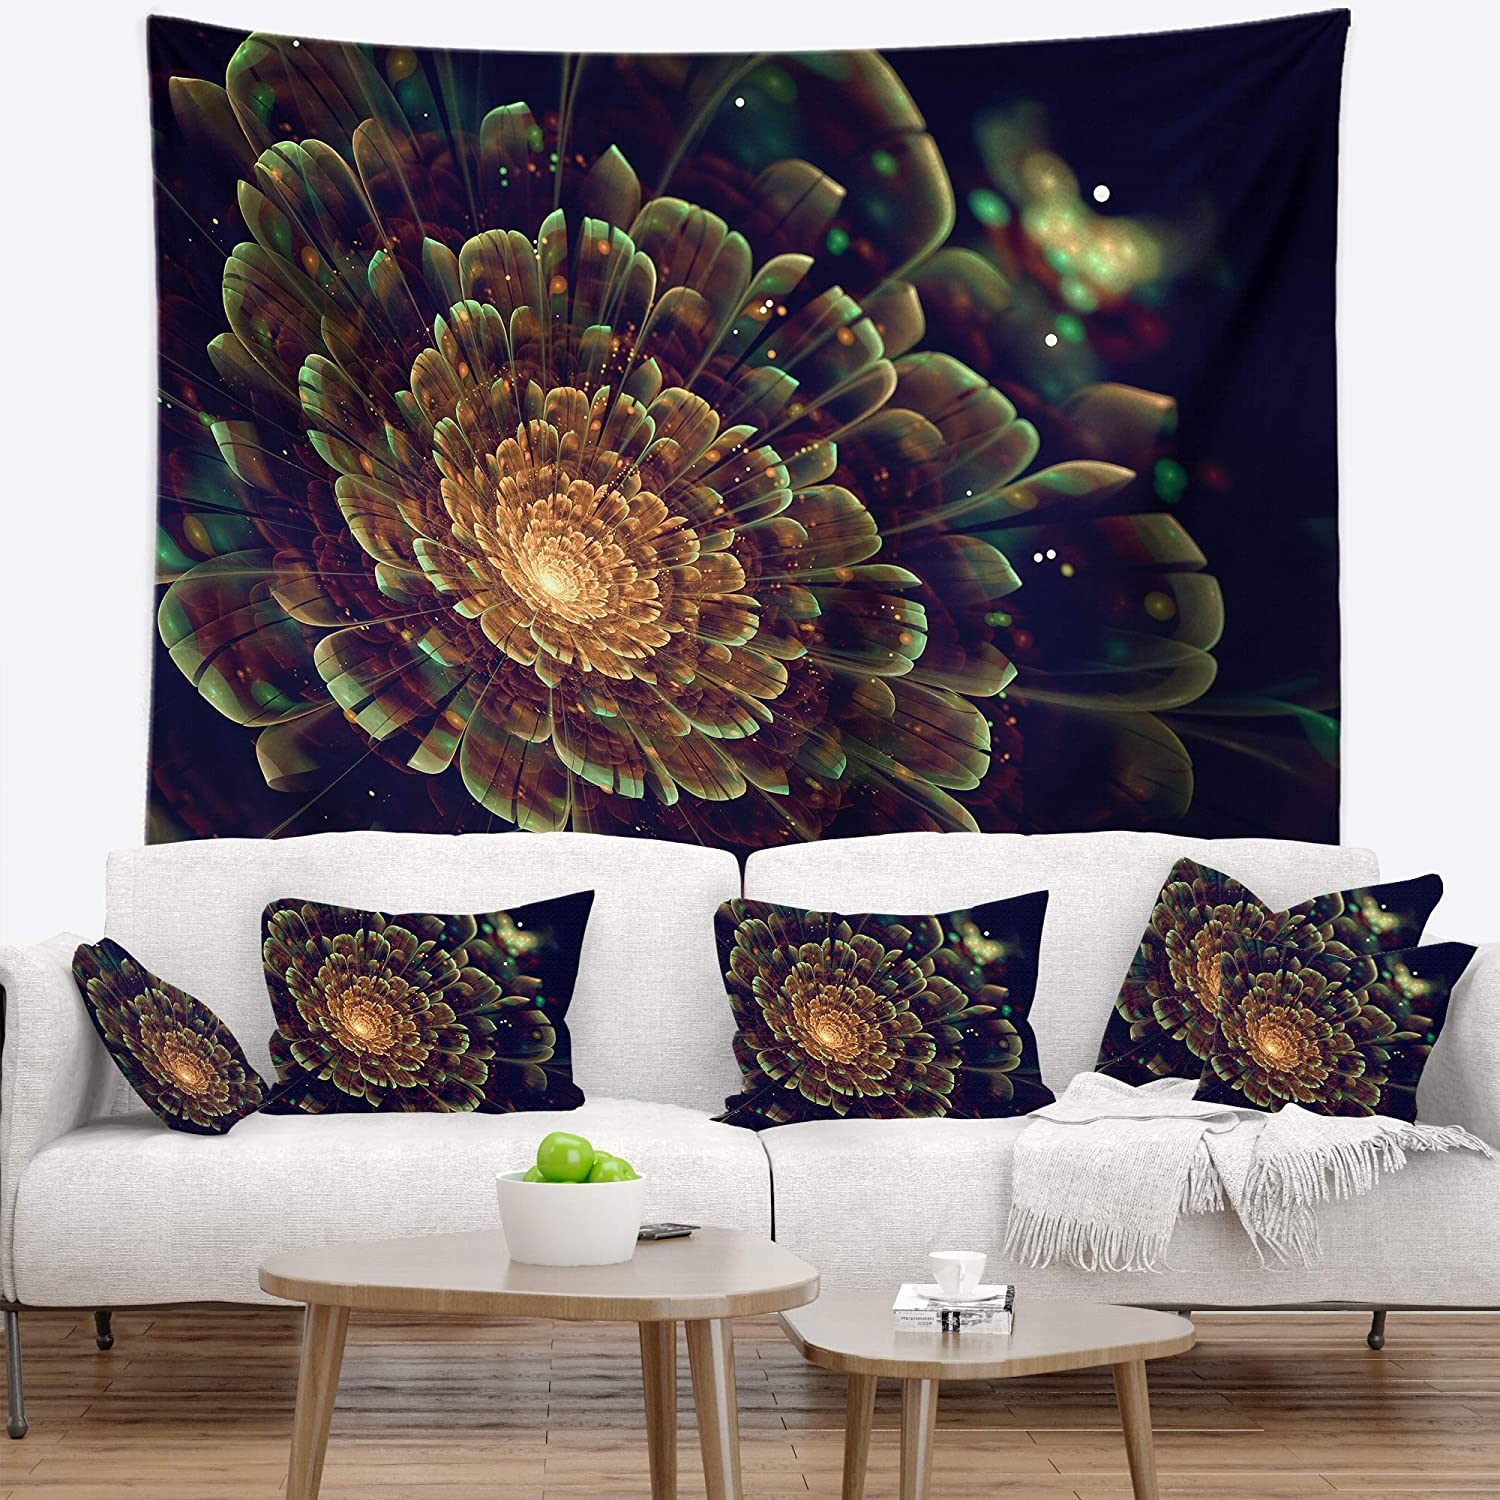 x 32 in Designart TAP7279-39-32  Orange Metallic Fractal Flower Abstract Blanket D/écor Art for Home and Office Wall Tapestry Medium 39 in in